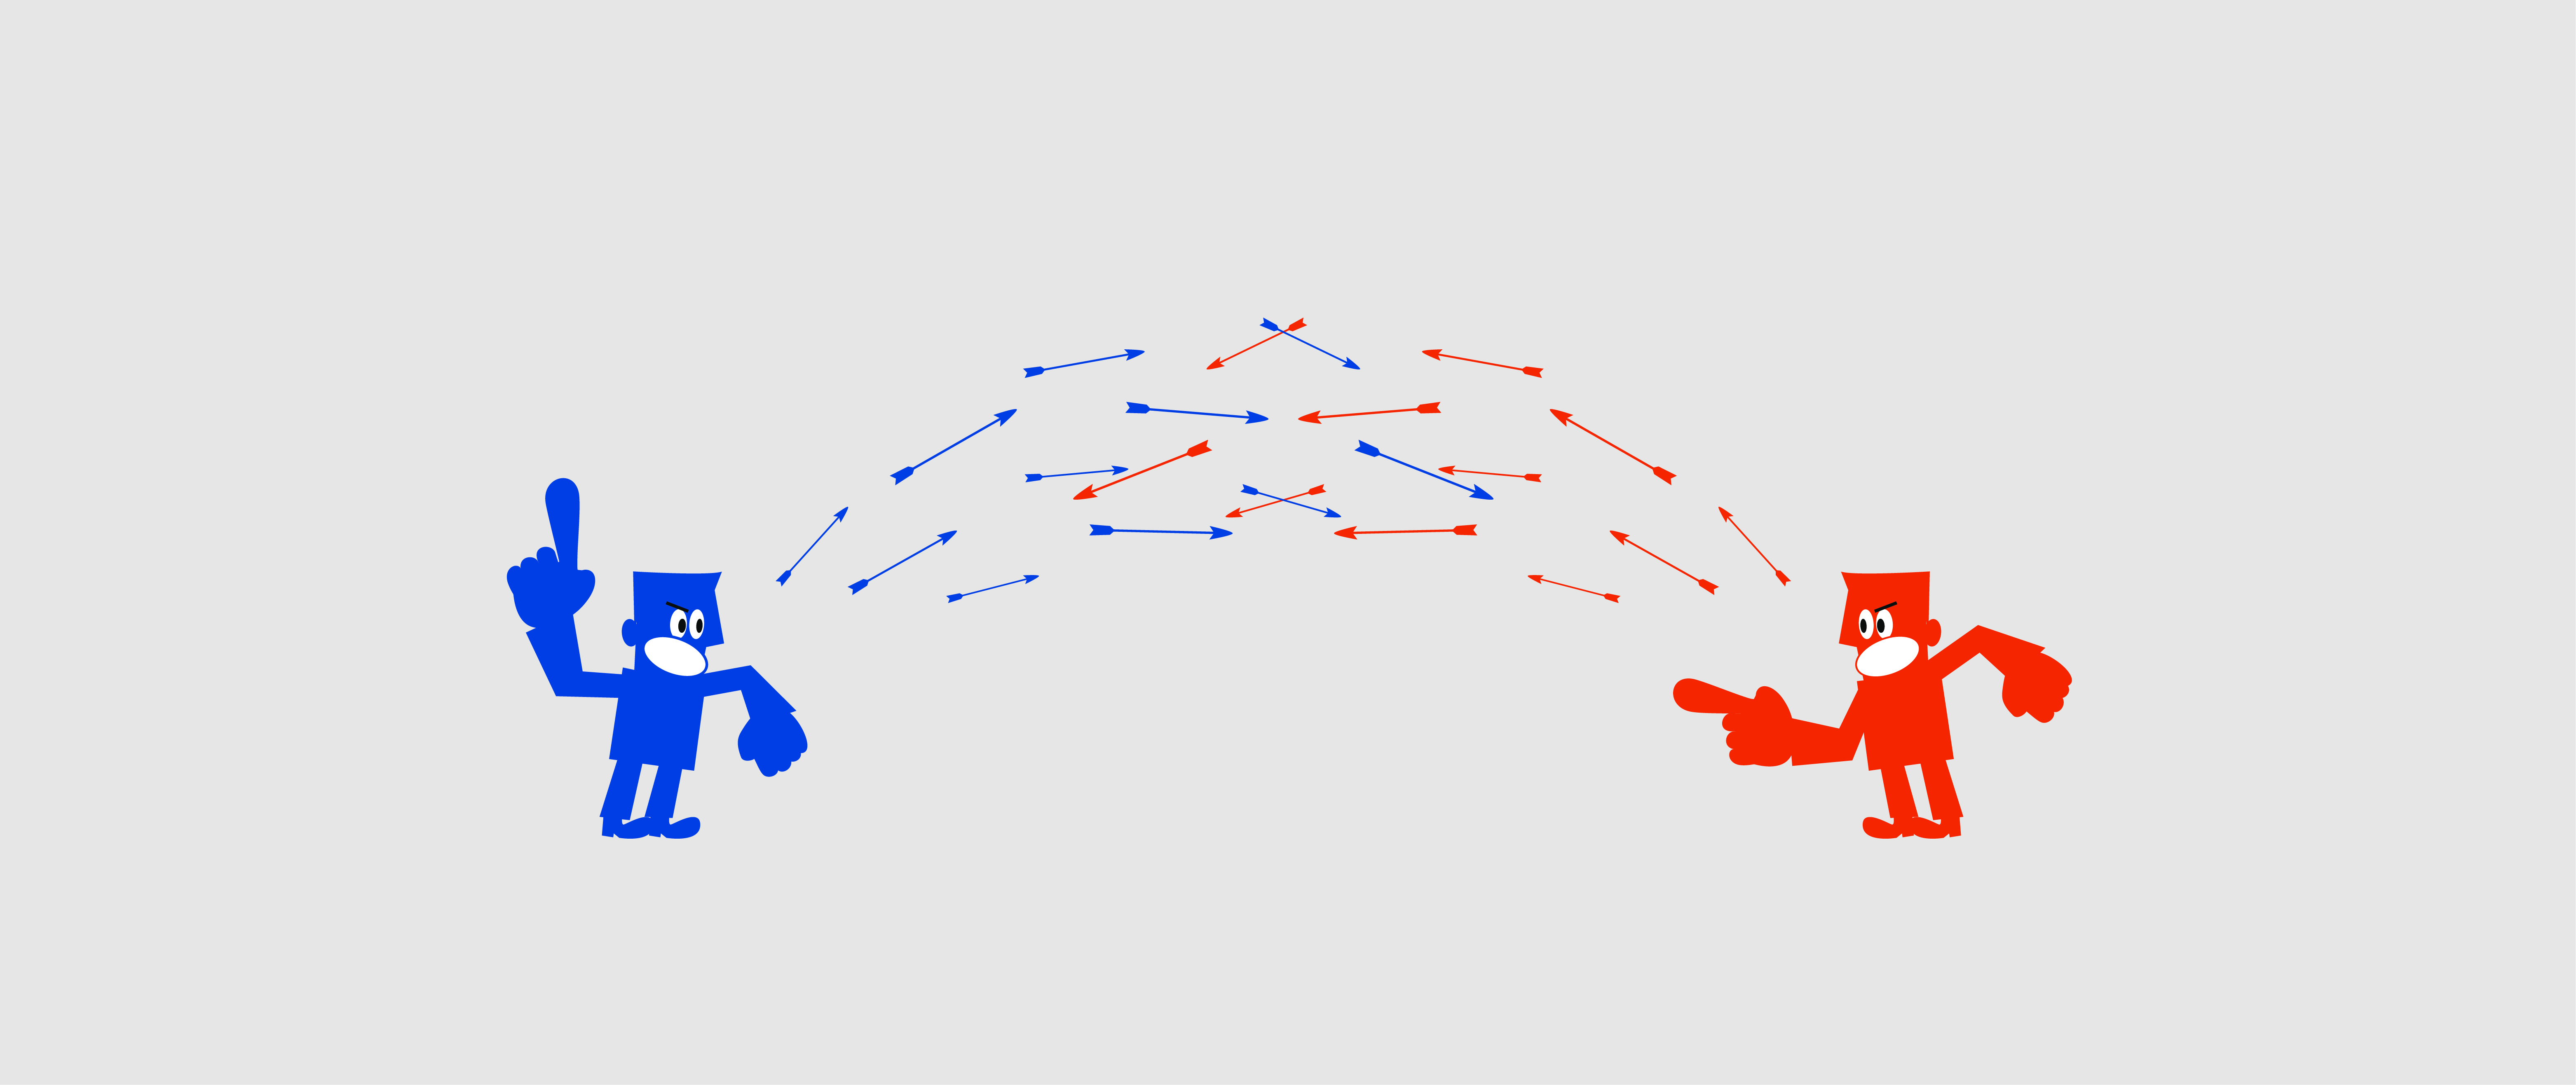 Political Polarization: Often Not as Bad as We Think